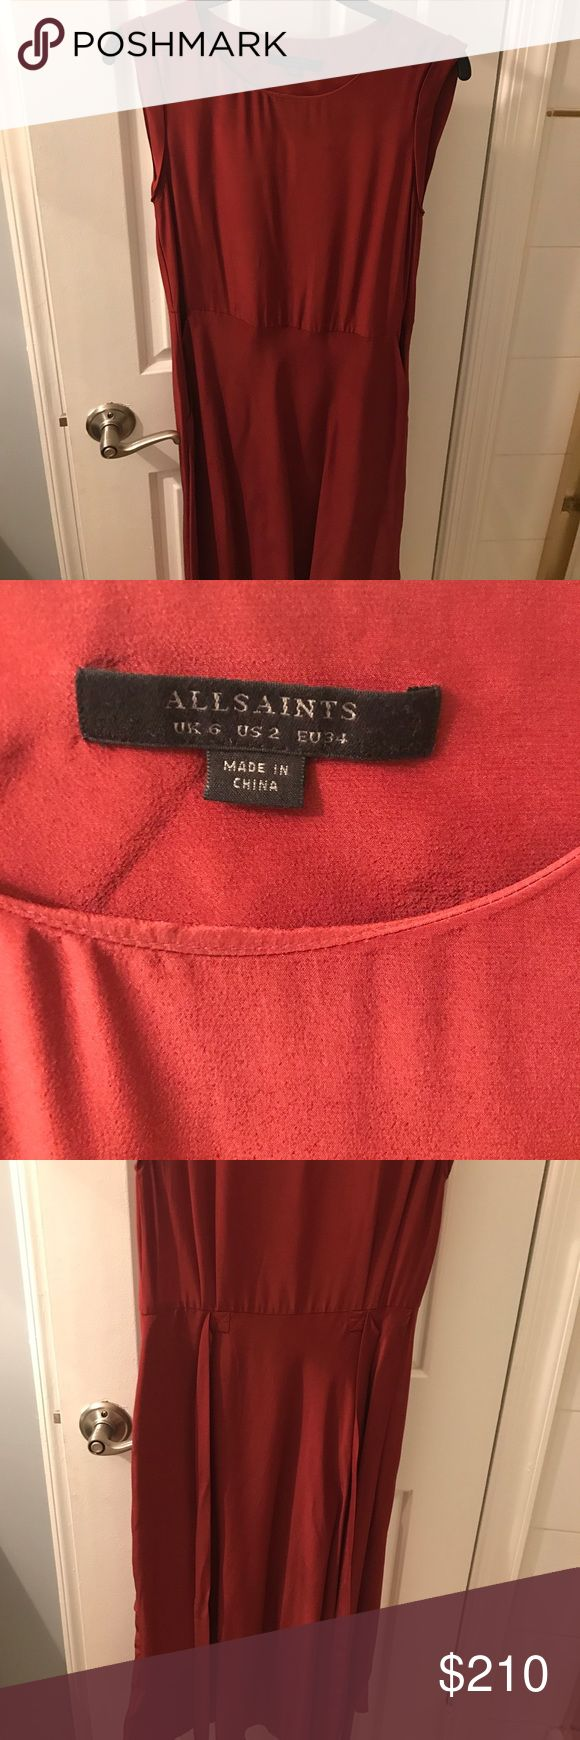 Amazing NWT Allsaints dress Supper cute Allsaints dress NWT size 2 dress! Love this dress but I need to sell a lot of my clothing at the moment! Looking to sell! Not trades!! All Saints Dresses Midi